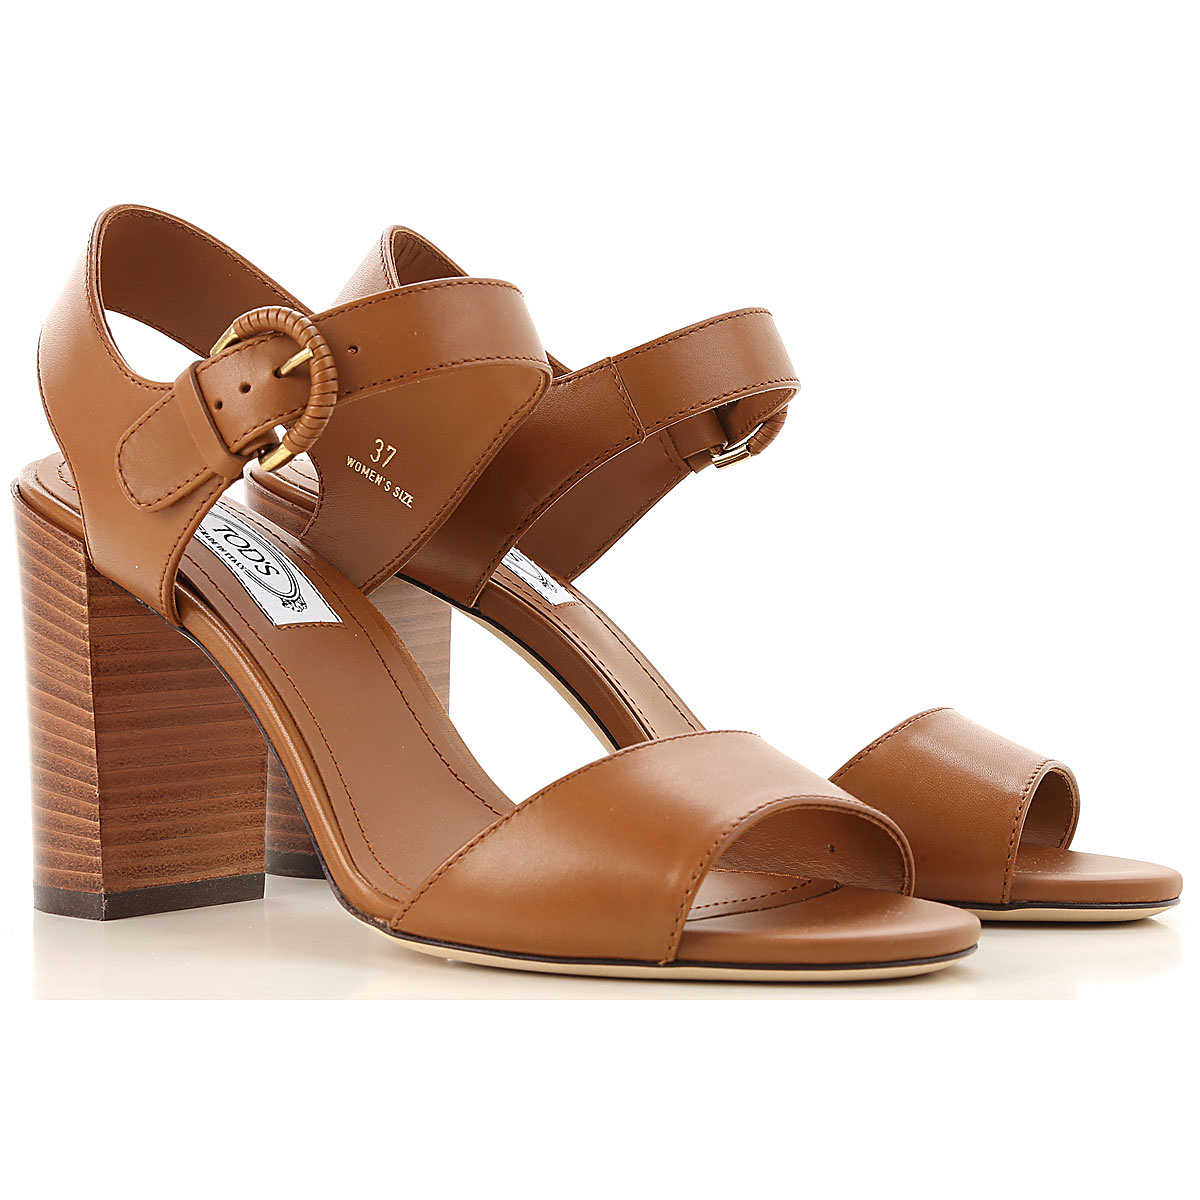 Tods Sandals for Women On Sale Brown UK - GOOFASH